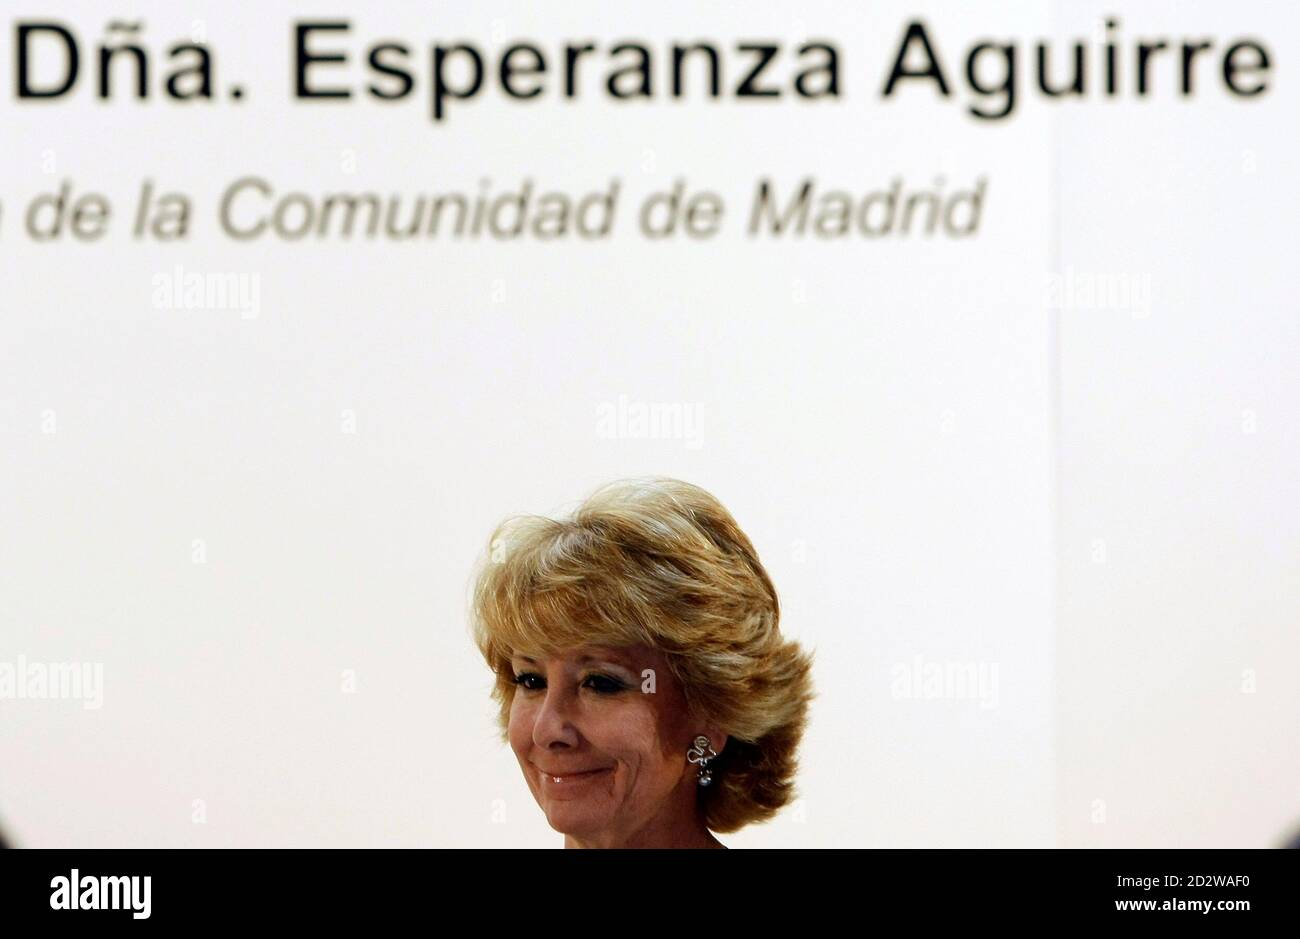 Esperanza Aguirre (L), the president of the Madrid Regional Government and one of the main Popular Party (PP) leaders, prepares to speak at a political luncheon in Madrid April 7, 2008. REUTERS/Sergio Perez (SPAIN) Stock Photo